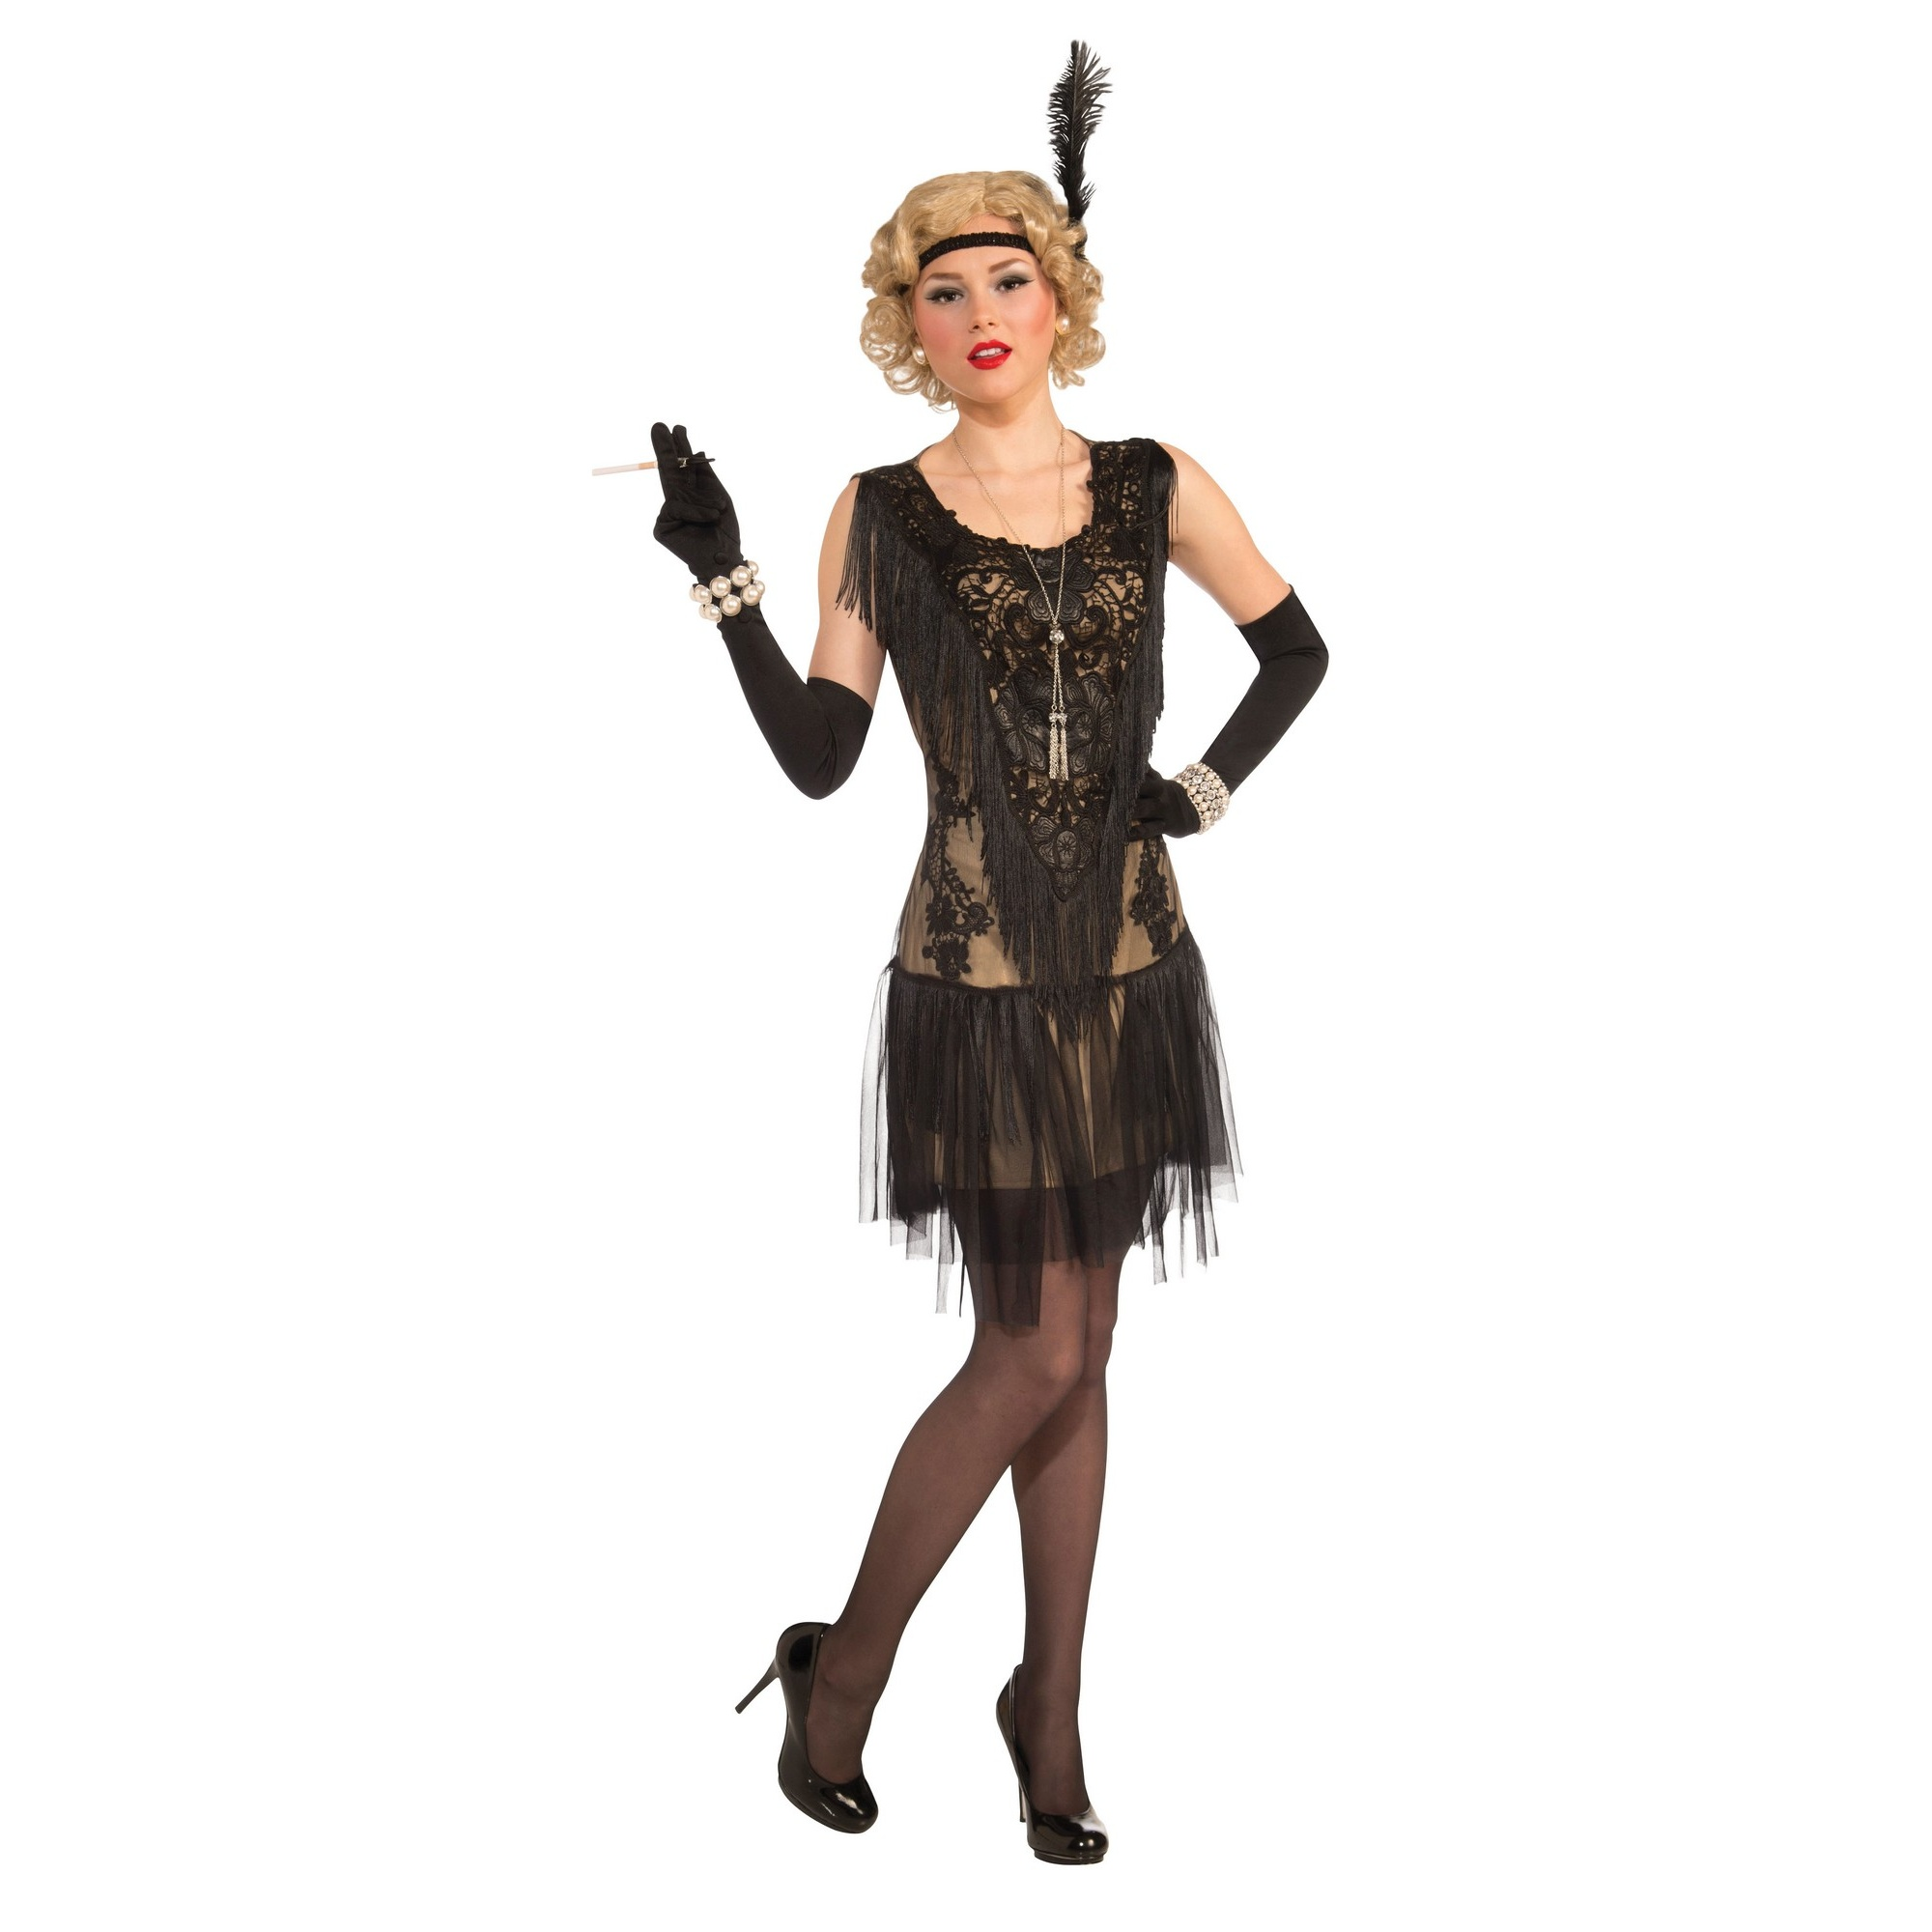 Bristol Novelty Womens/Ladies Lacey Flapper Dress Costume (10-14 UK) (Black)